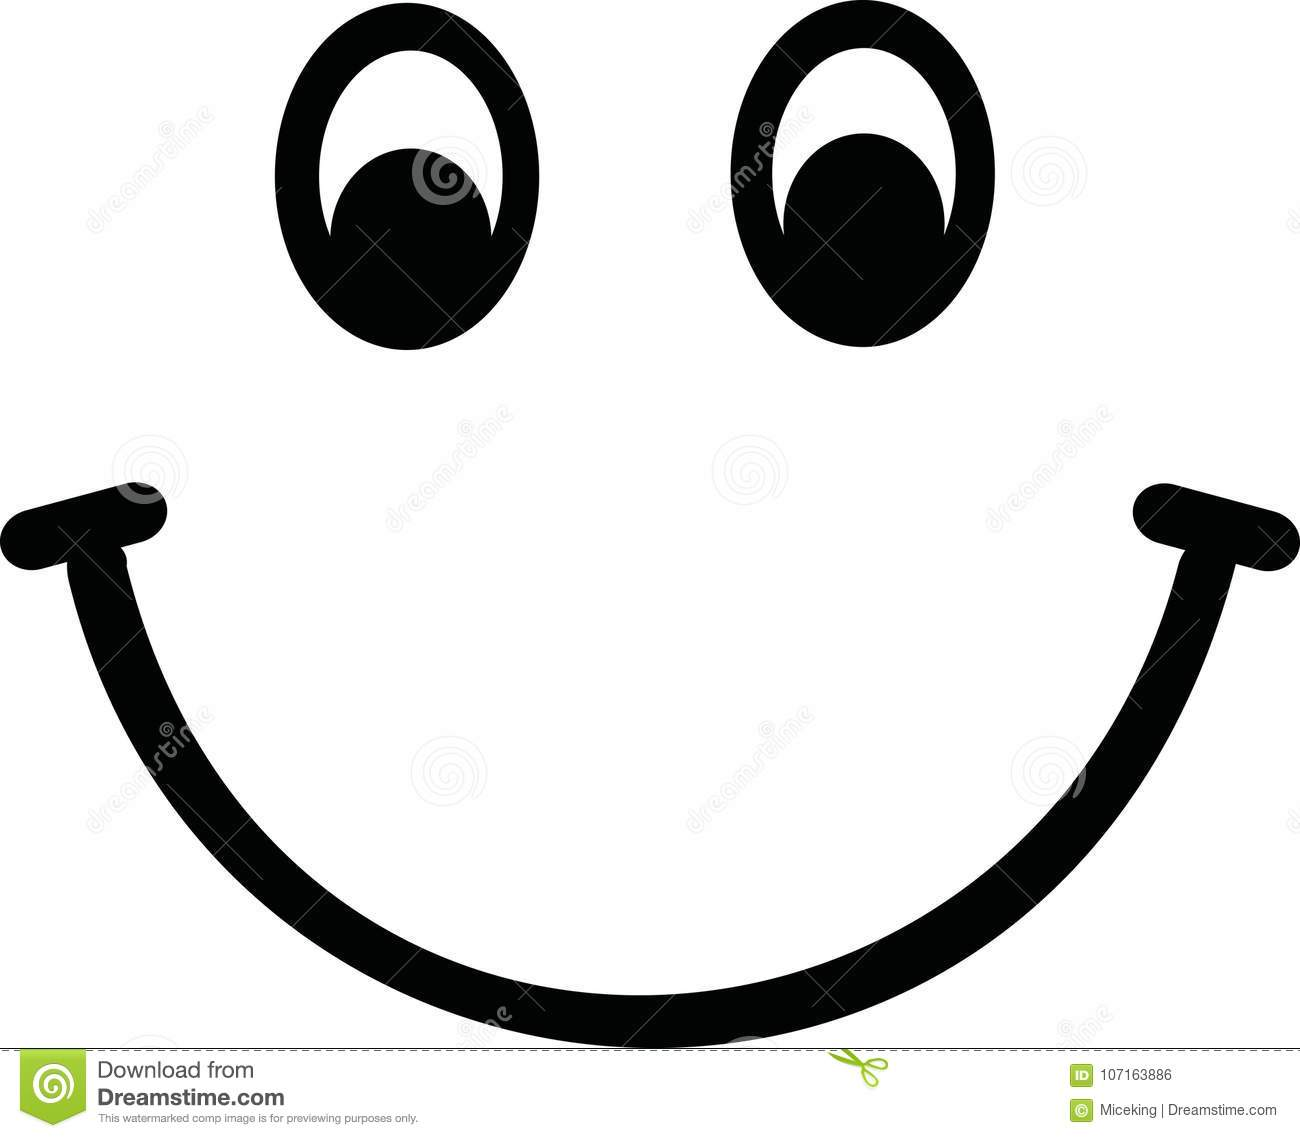 Smiley Face Vector Stock Vector. Illustration Of Icon